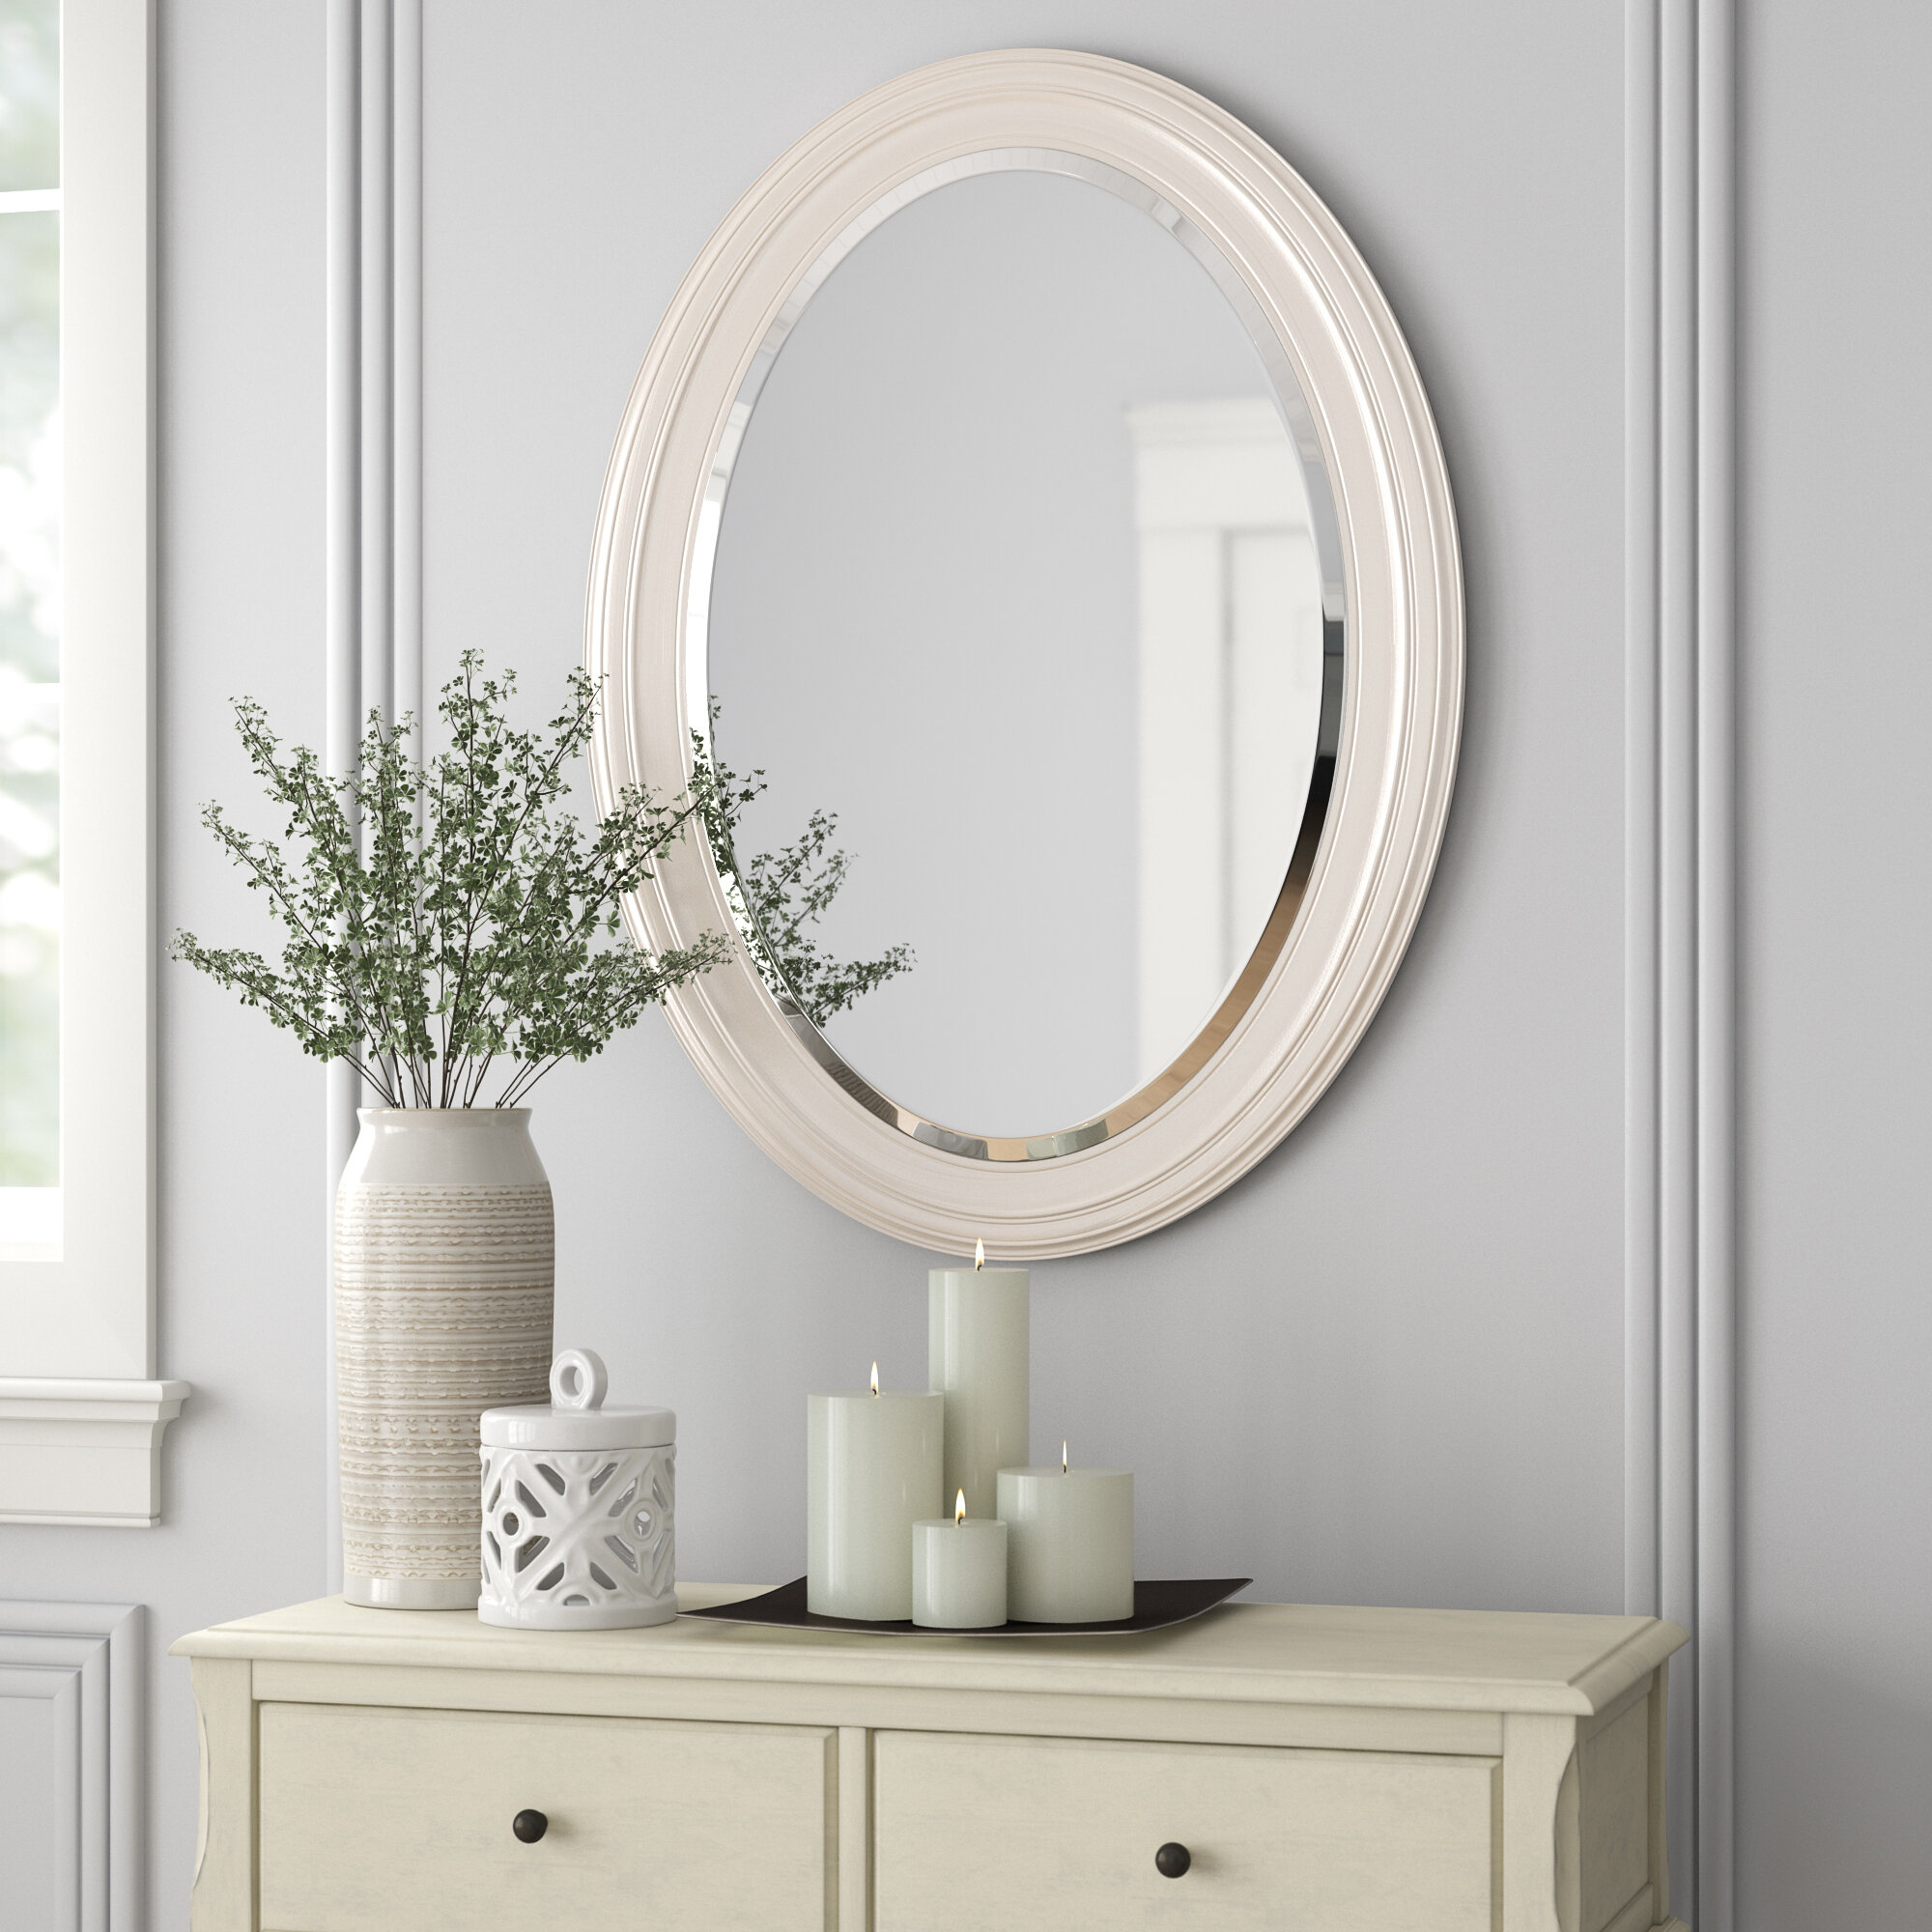 Pfister Oval Wood Wall Mirror Intended For Oval Wood Wall Mirrors (View 22 of 30)